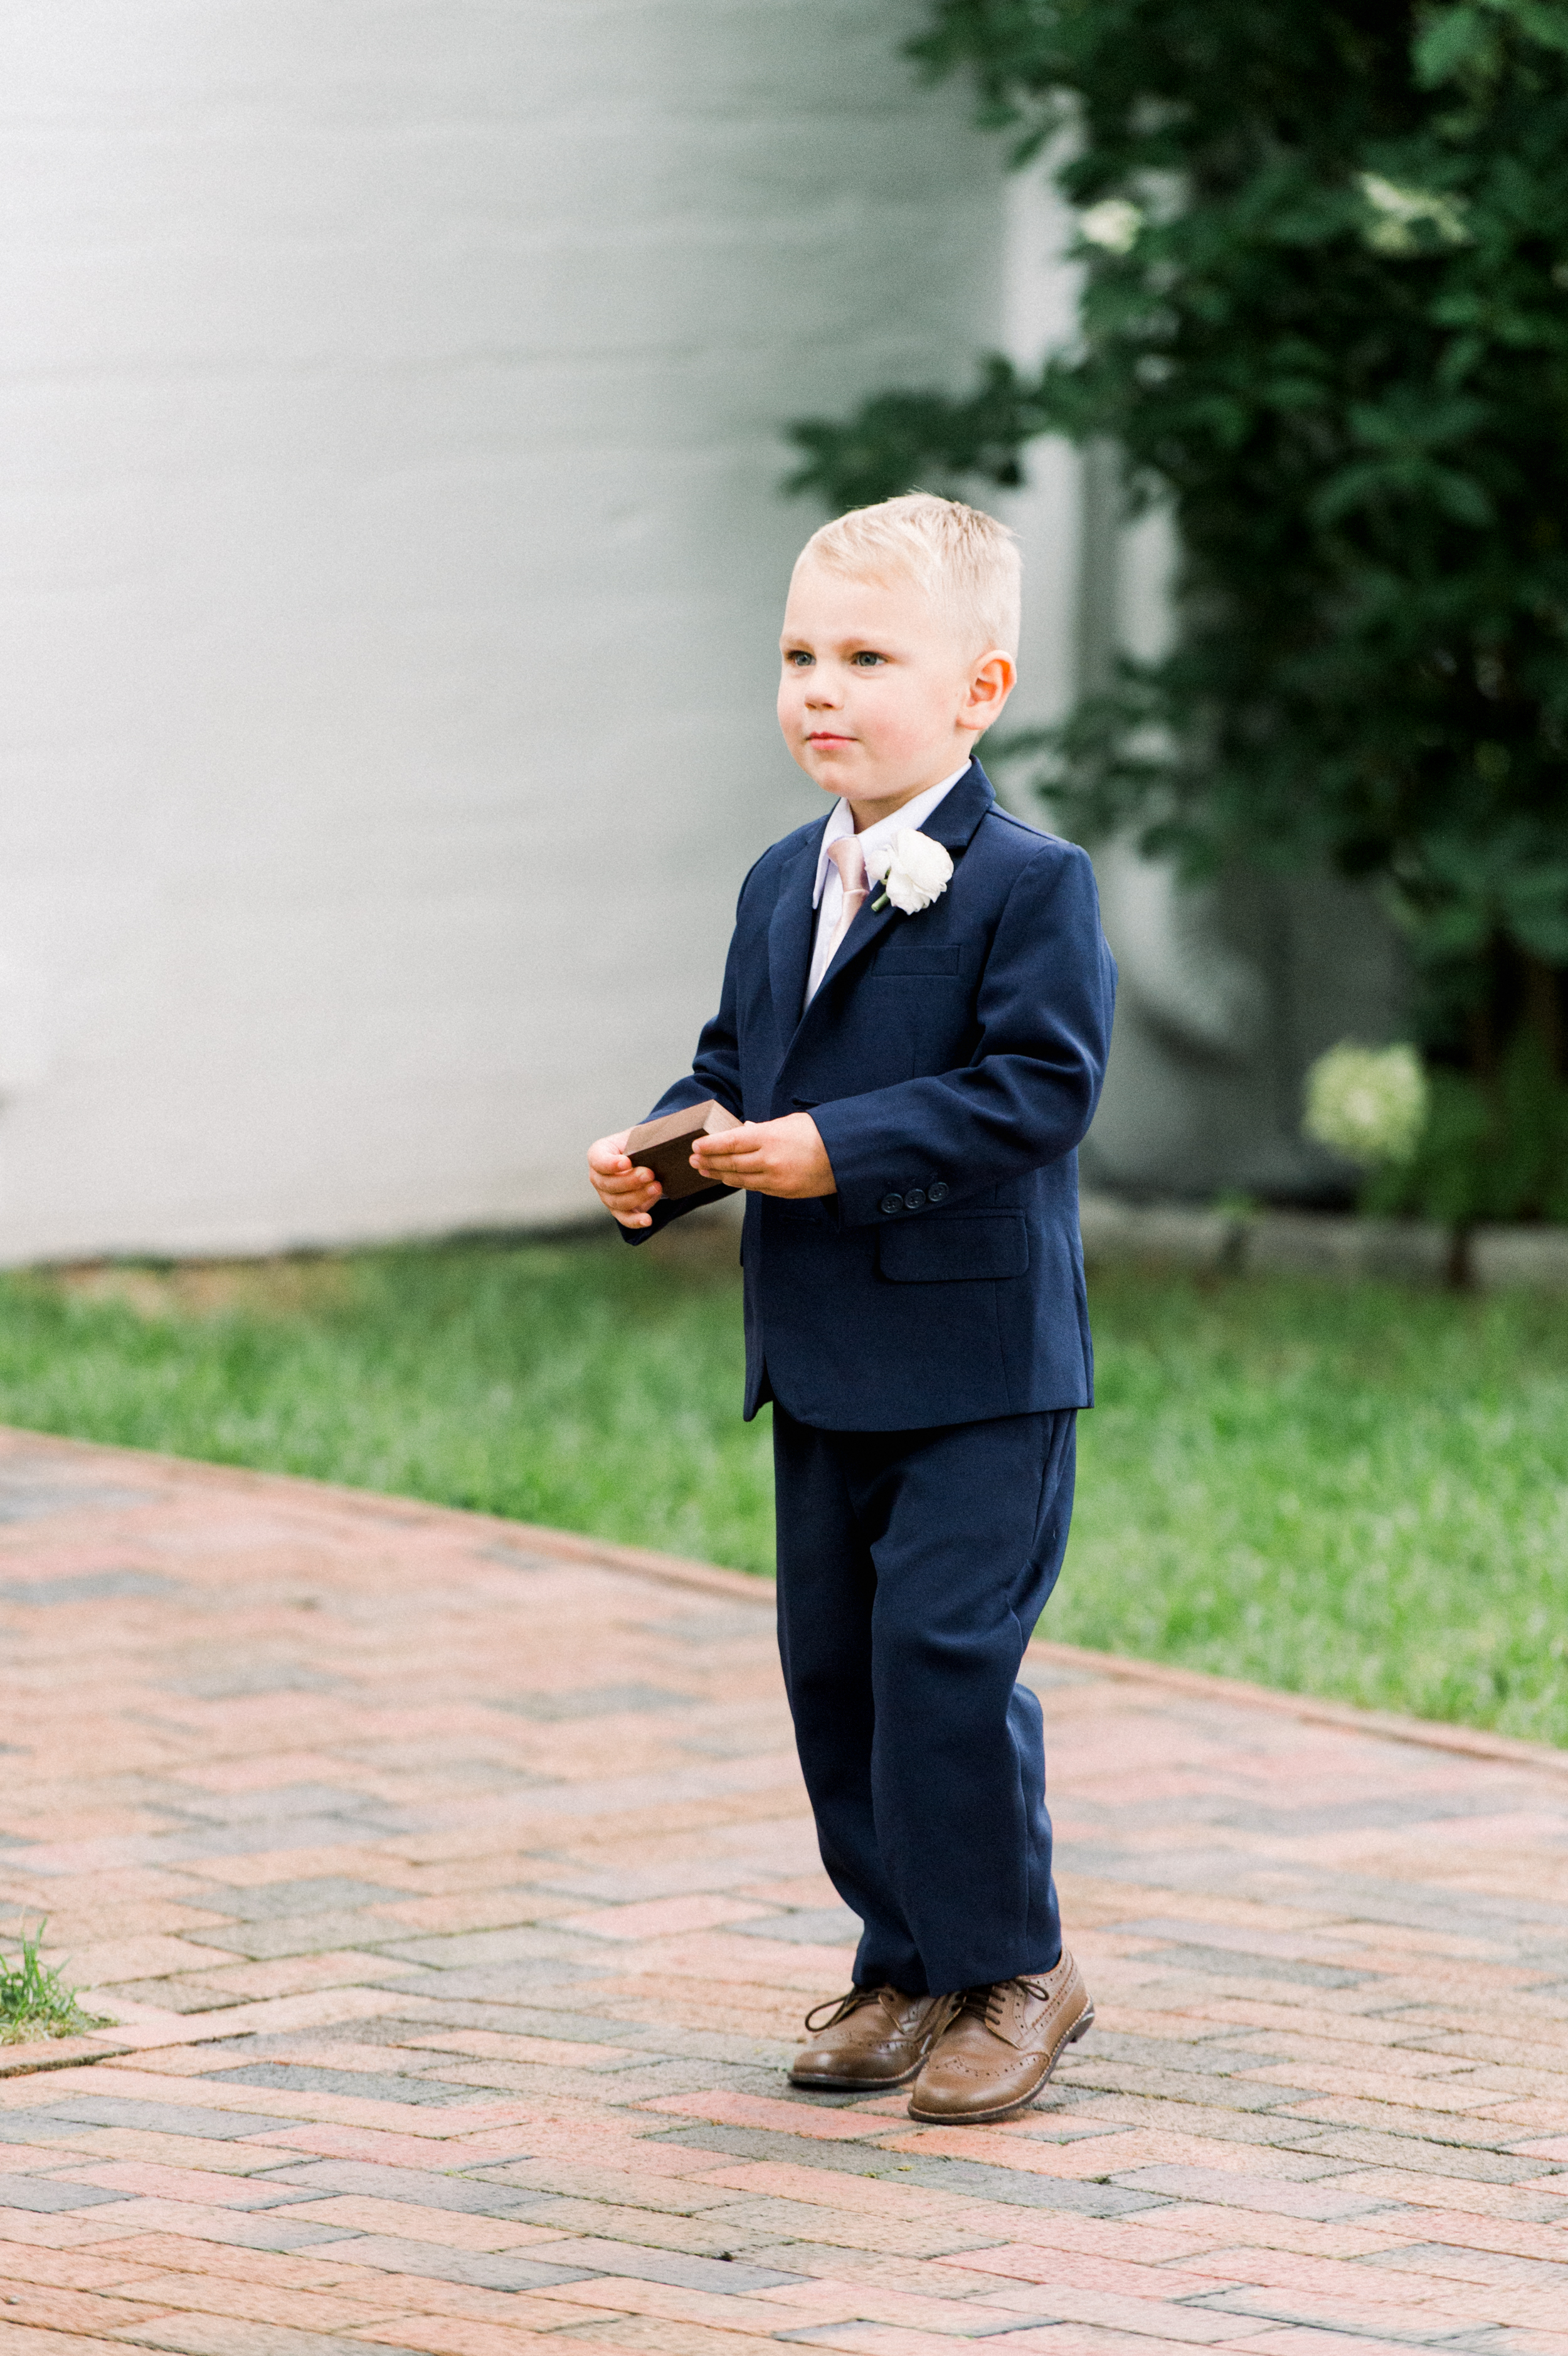 The Commons 1854 Topsfield MA wedding | Massachusetts wedding venue | Massachusetts wedding photography | ring bearer in a navy suit and pink tie | ceremony inspiration